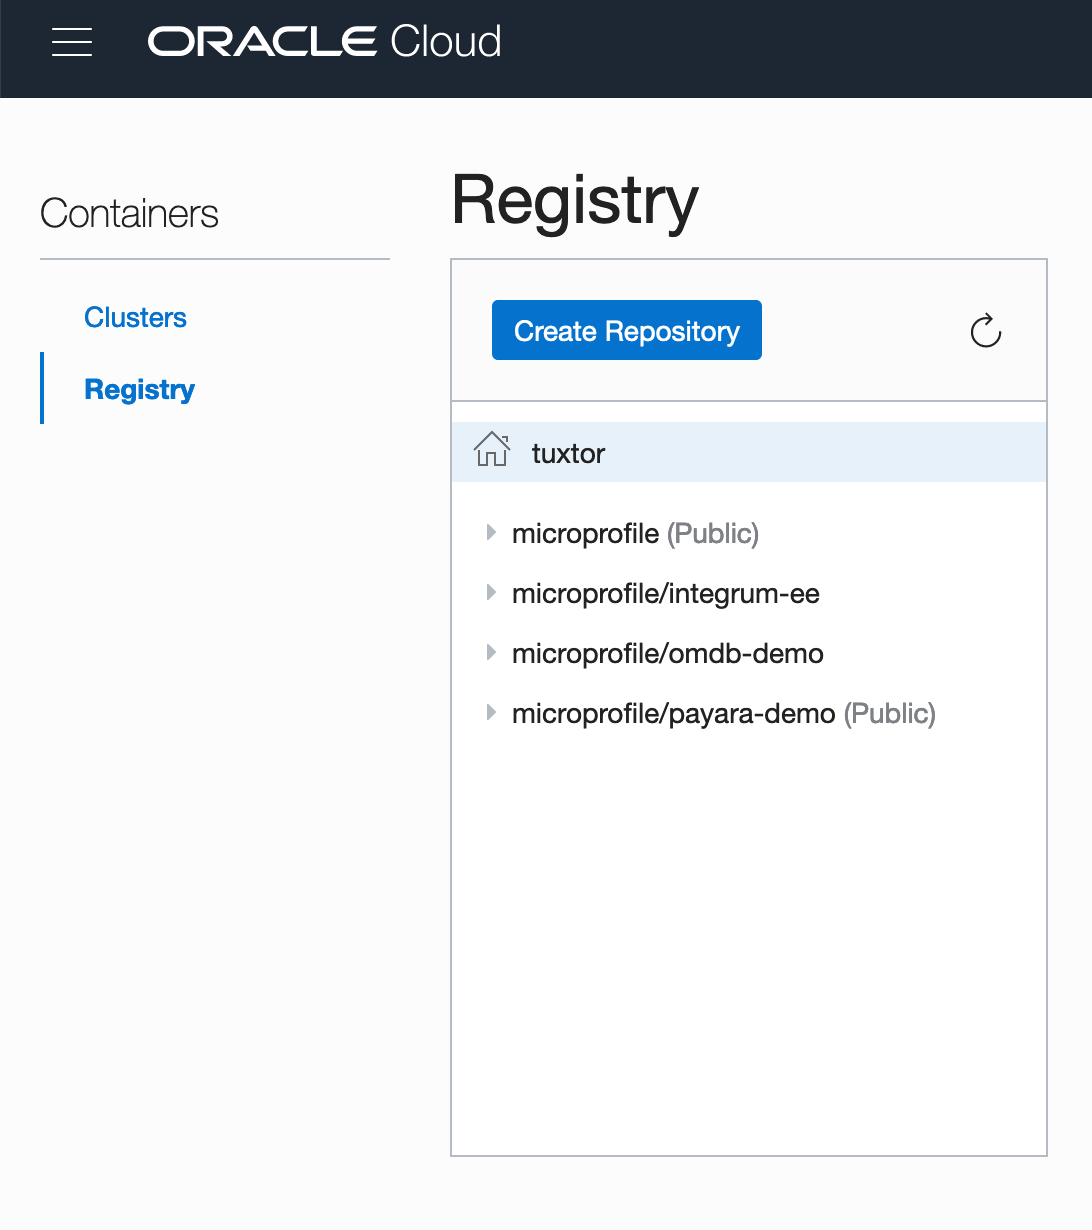 Oracle Container Registry